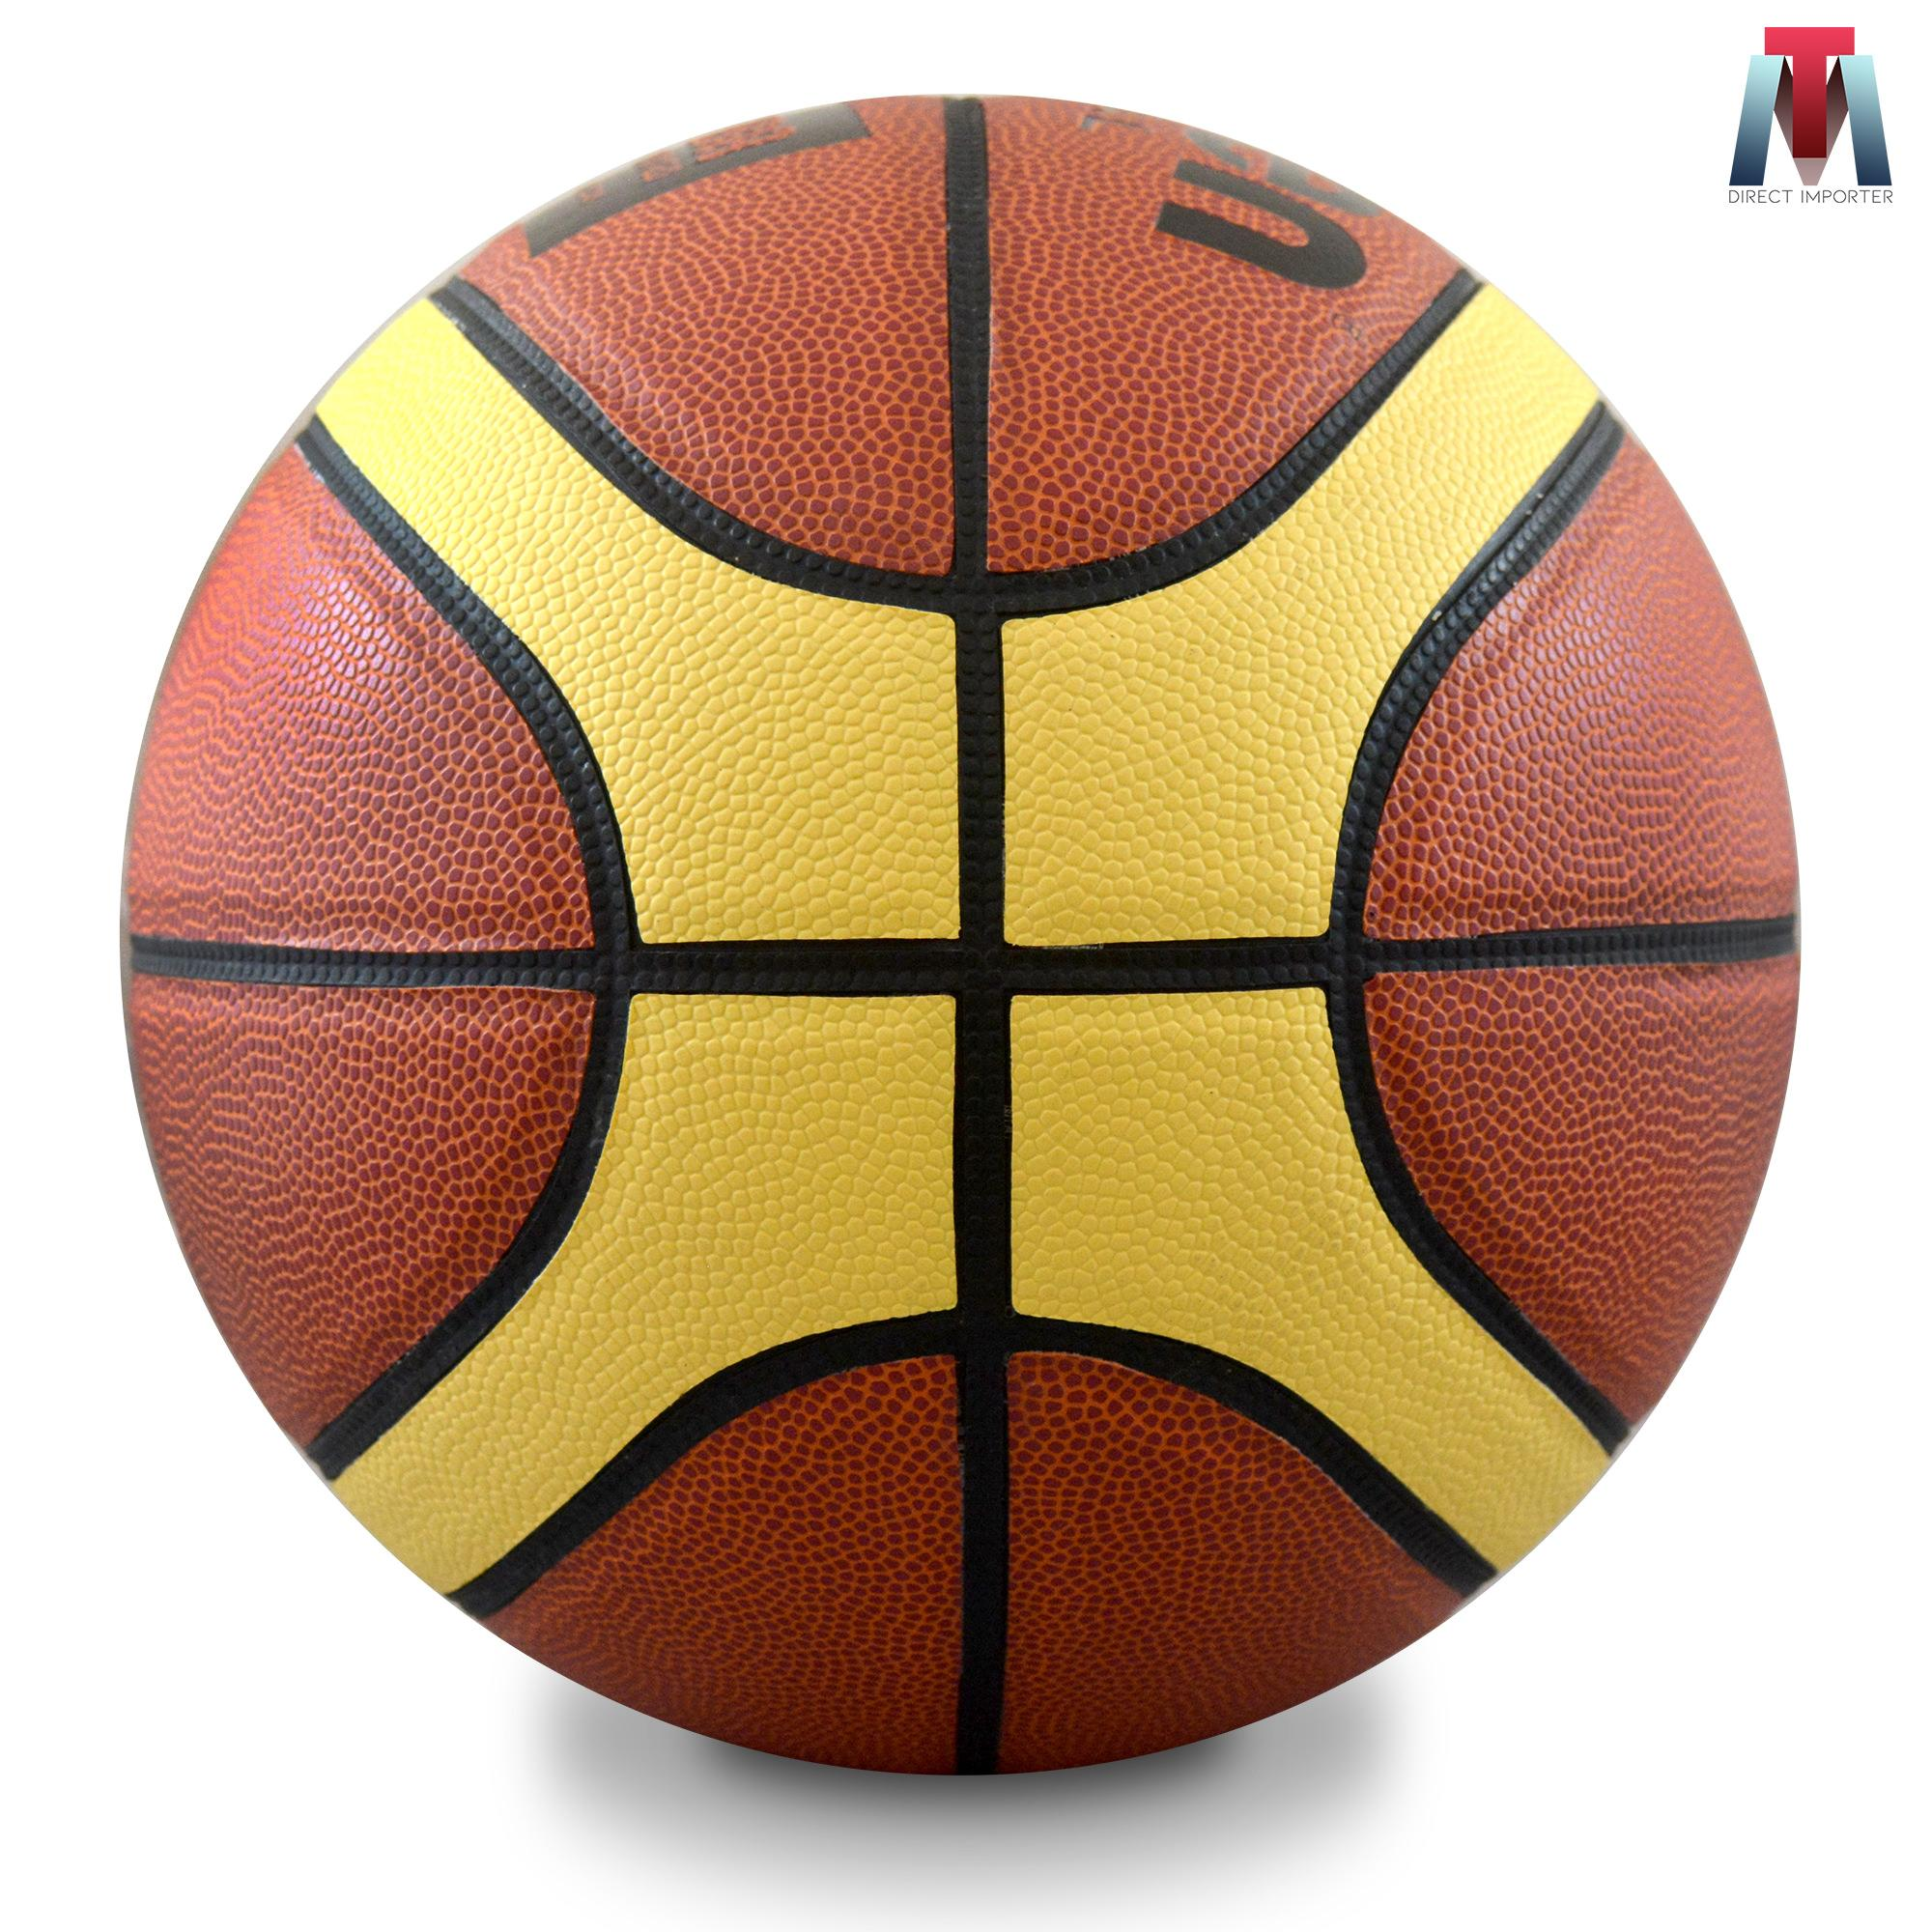 Basketball For Sale Game Online Brands Prices Bola Basket Size 7 Bgl7 Fiba Official